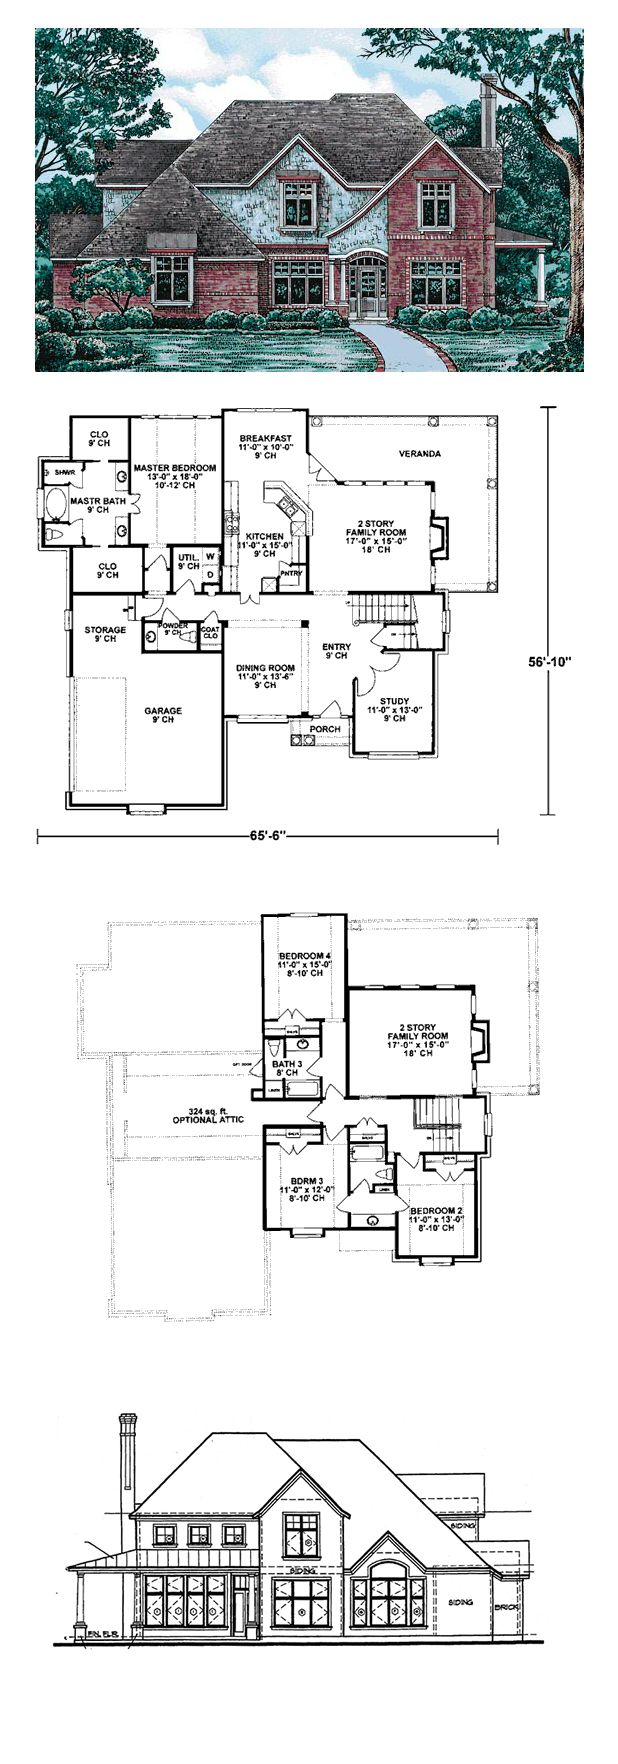 49 best images about luxury house plans on pinterest for Luxury european home plans